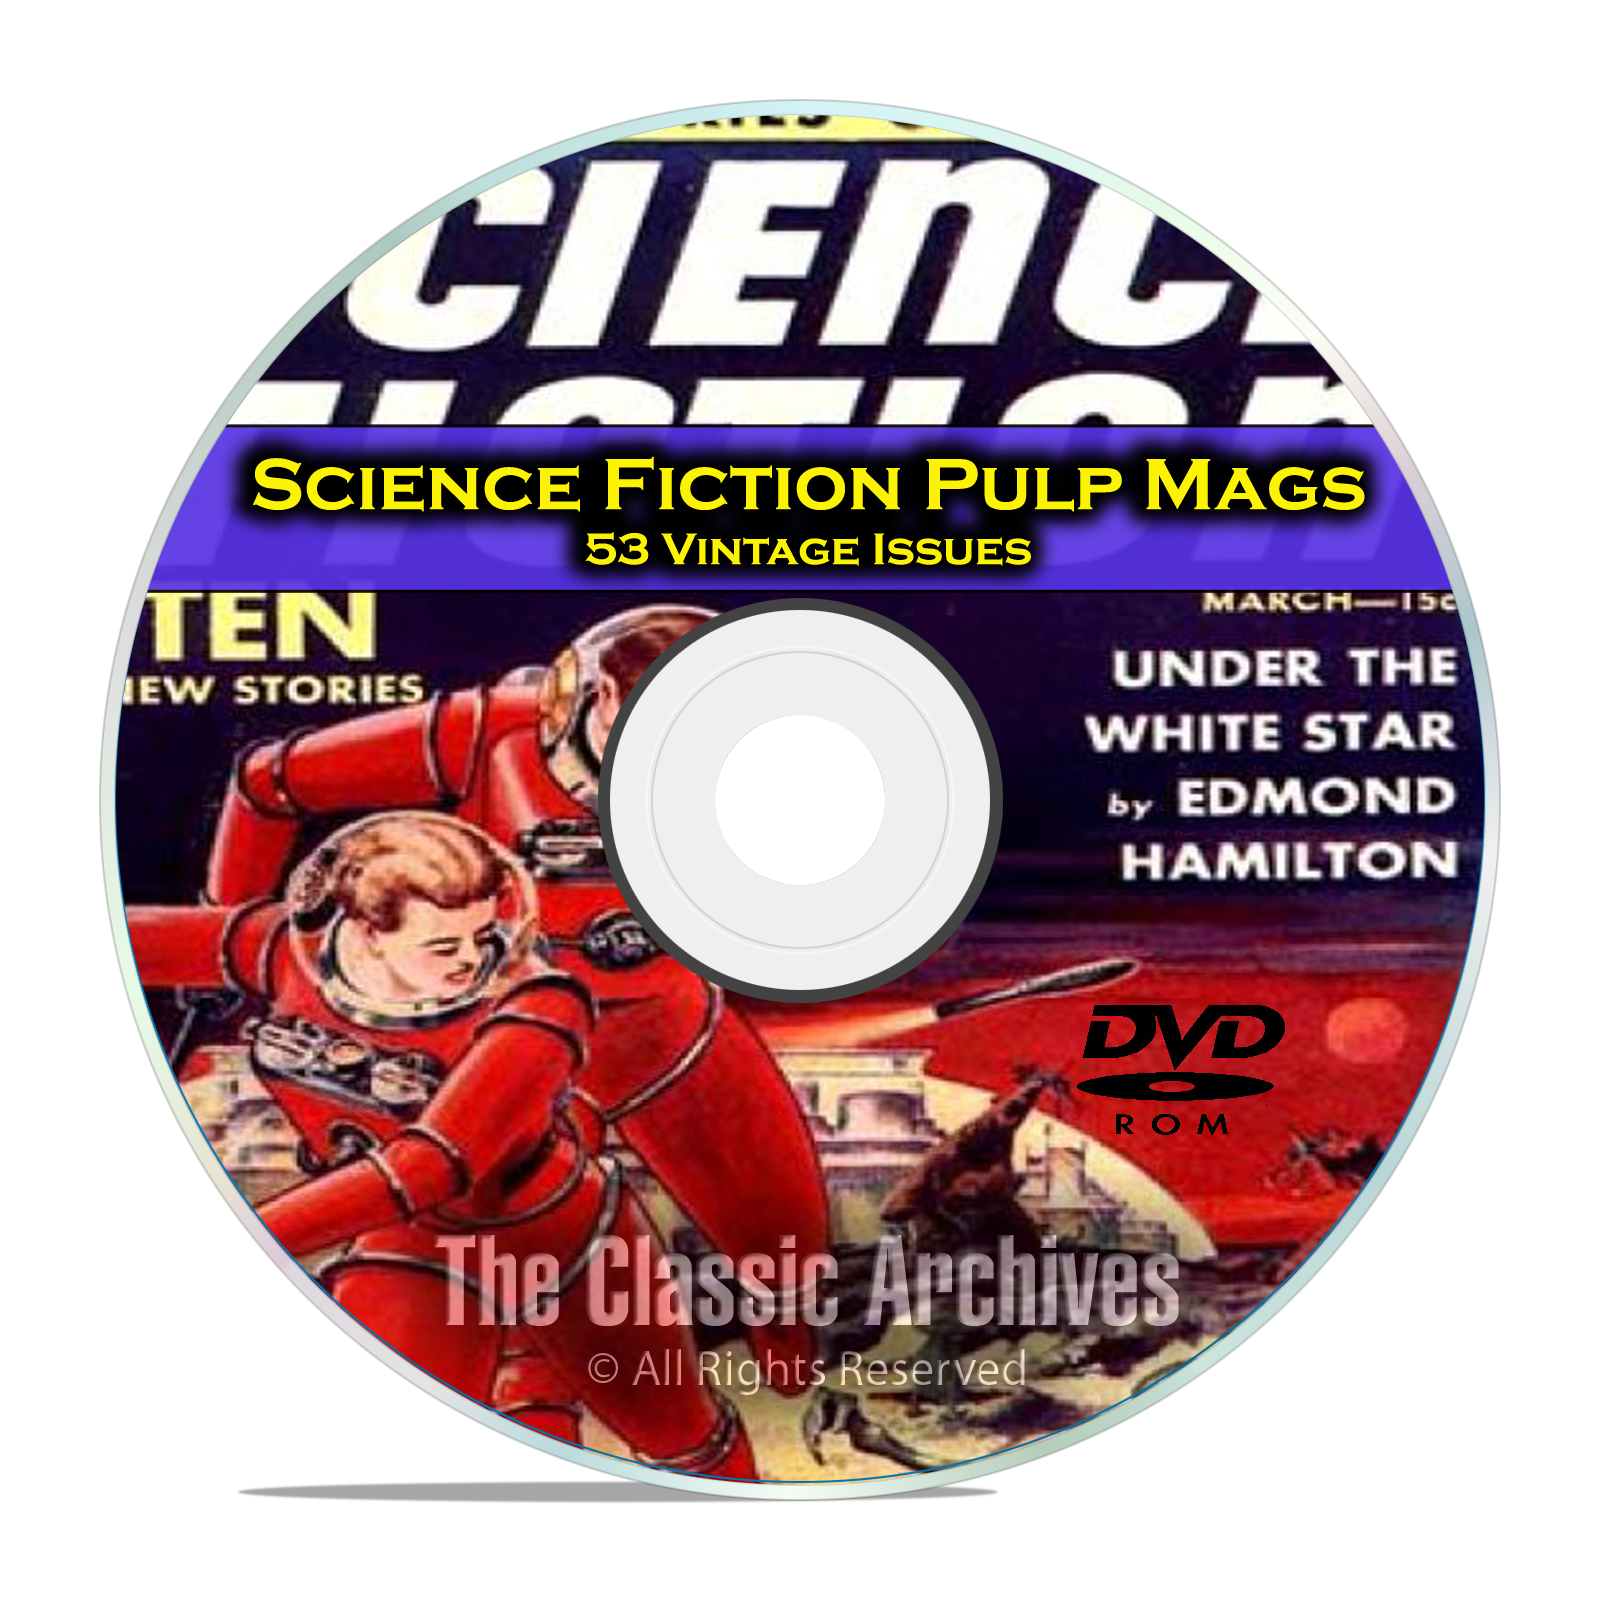 Science Fiction Adventures, Stories, Vintage Pulp Magazine, Fiction DVD